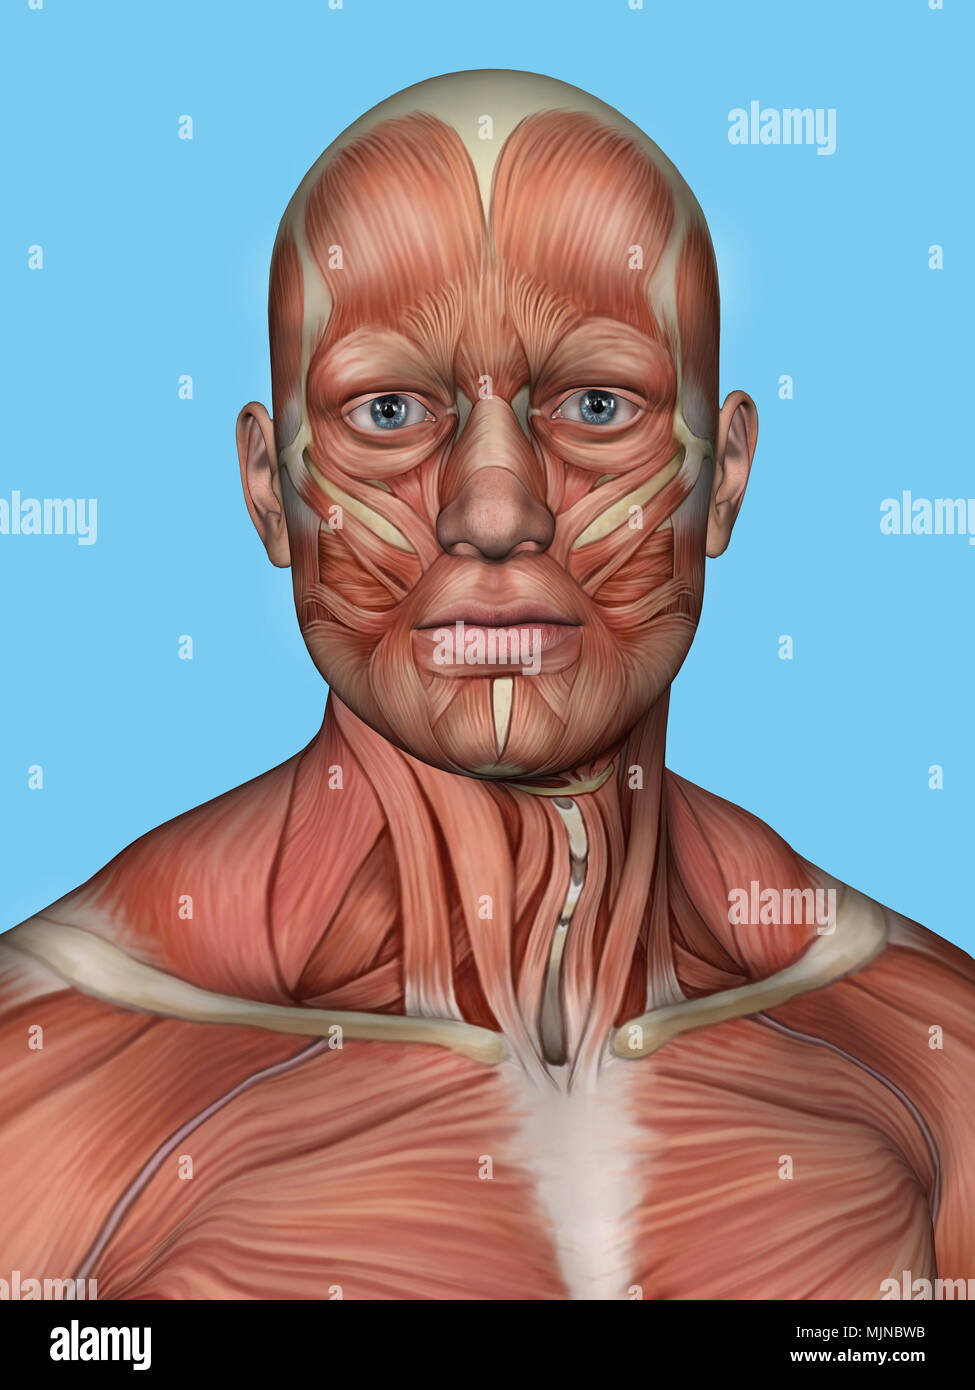 Anatomy Front View Of Major Face Muscles Of A Man Stock Photo